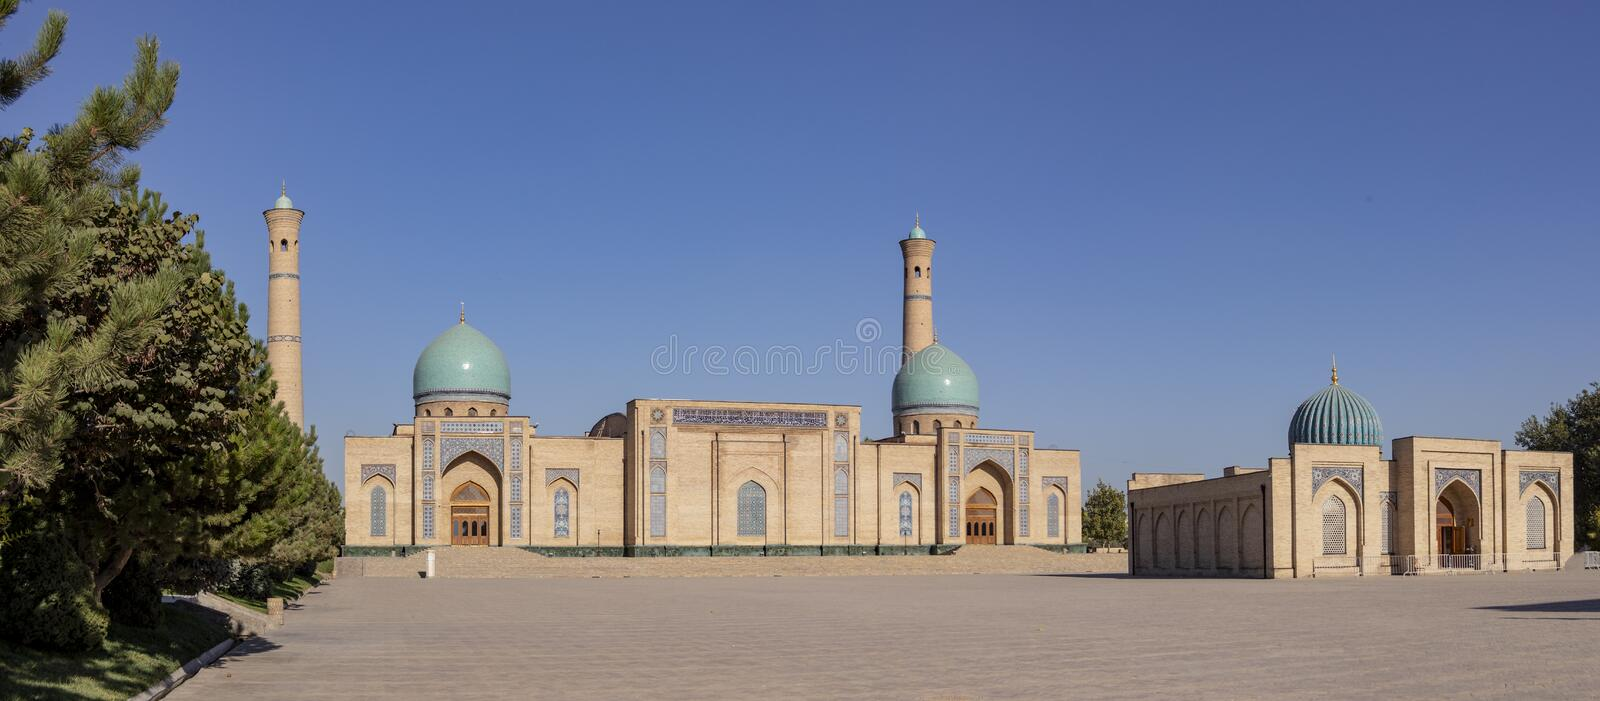 Madrasa and mosque in Old Town Tashkent, Uzbekistan royalty free stock photography